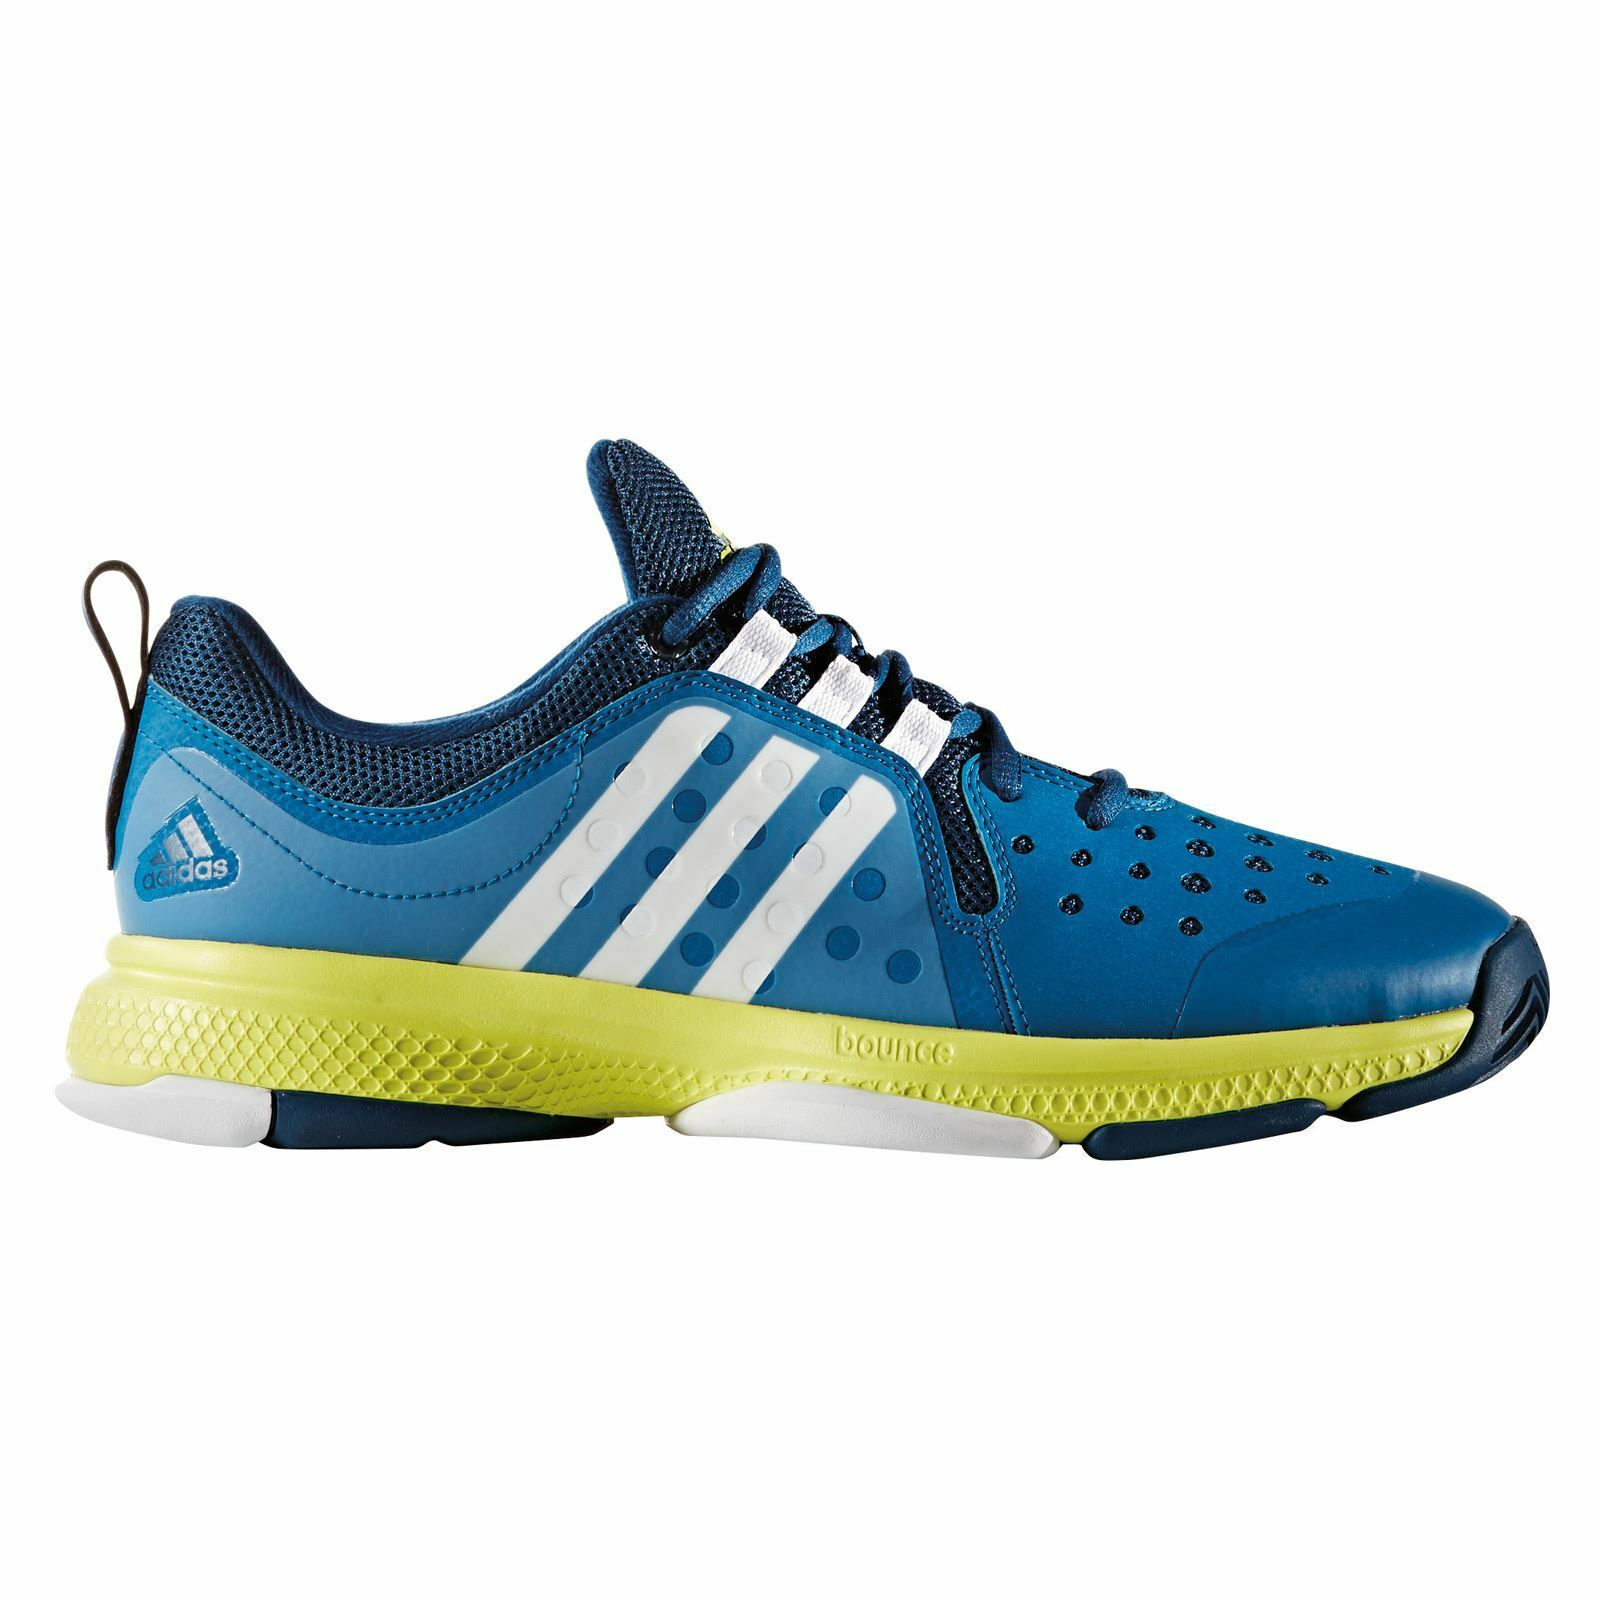 Adidas Barricade Bounce AQ2282 Mens Trainers7.59.51113.5 RRP .99